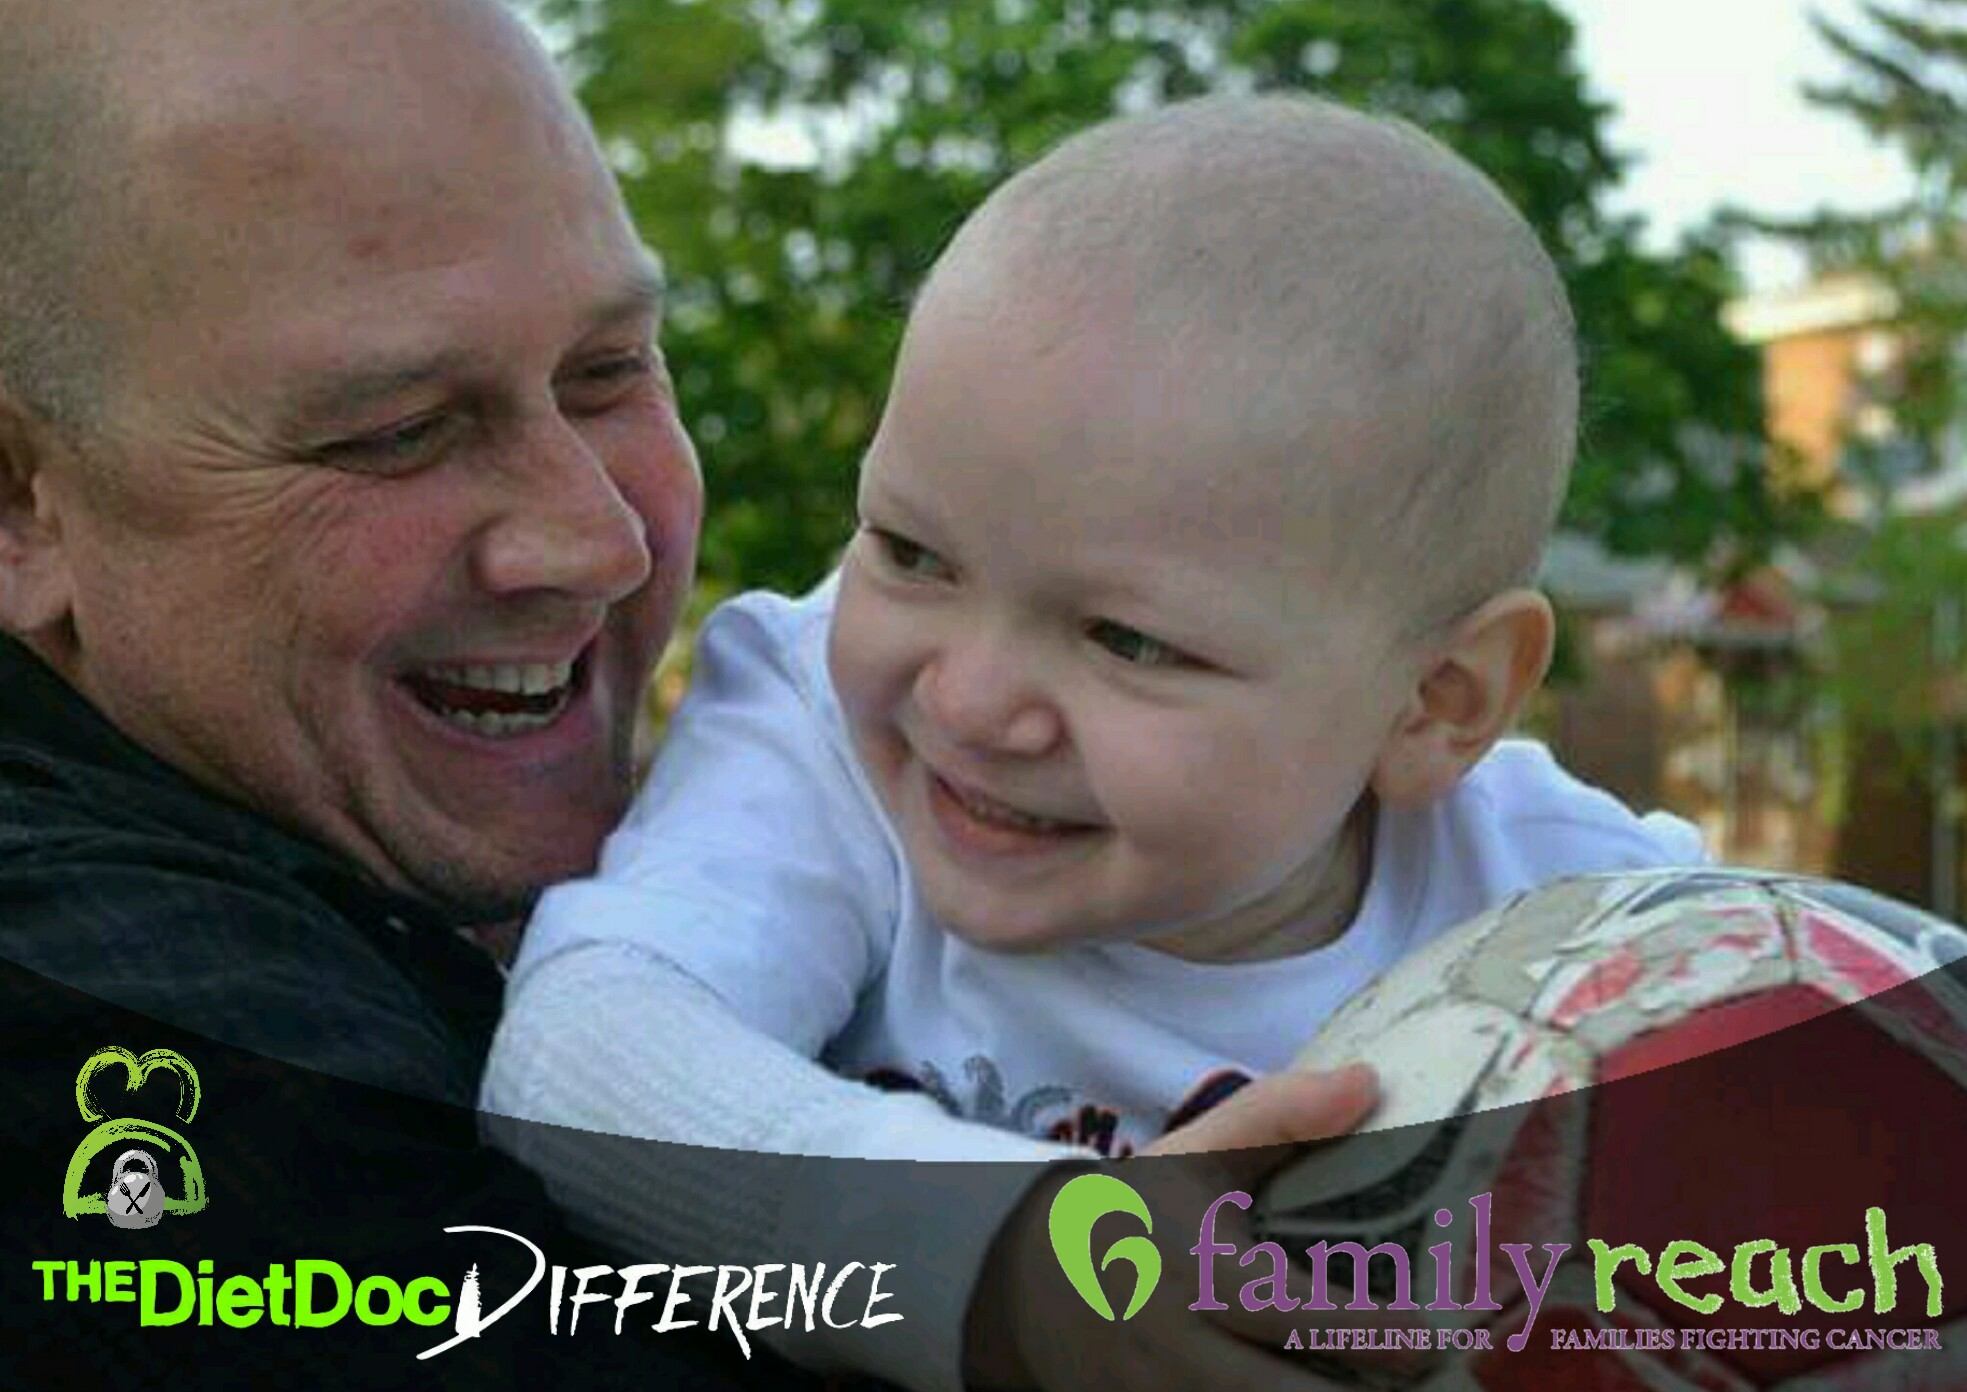 https://fundraise.familyreach.org/chicago/events/boot-camp-at-diet-doc-difference/e75513